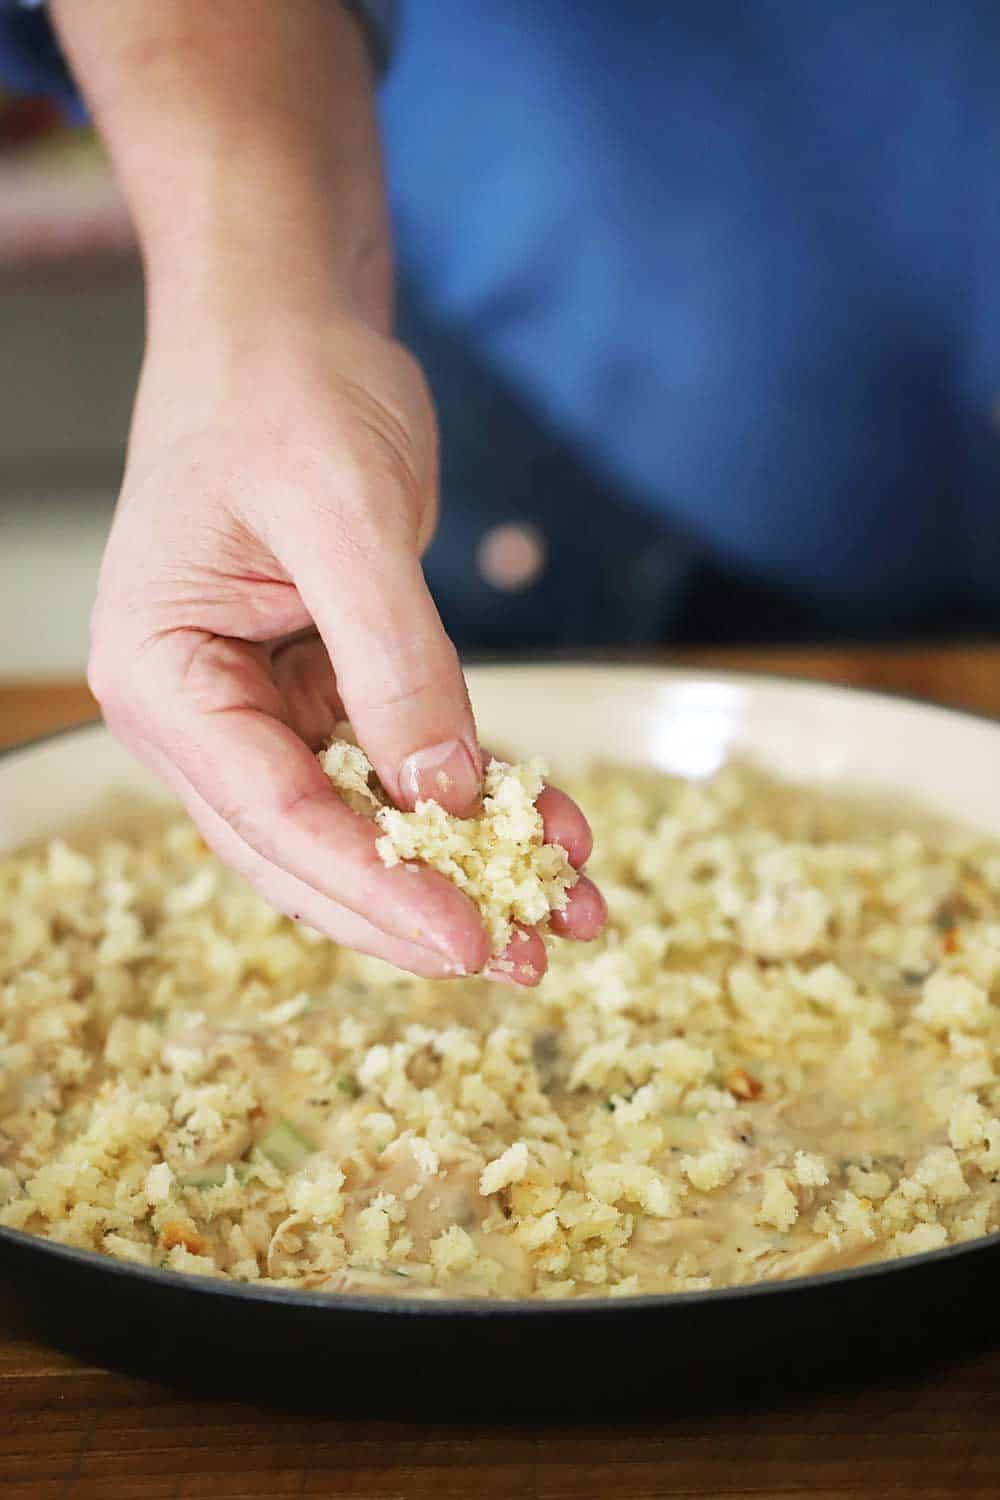 A person sprinkling fresh bread crumbs over the top of an uncooked oyster casserole in a black oval baking dish.